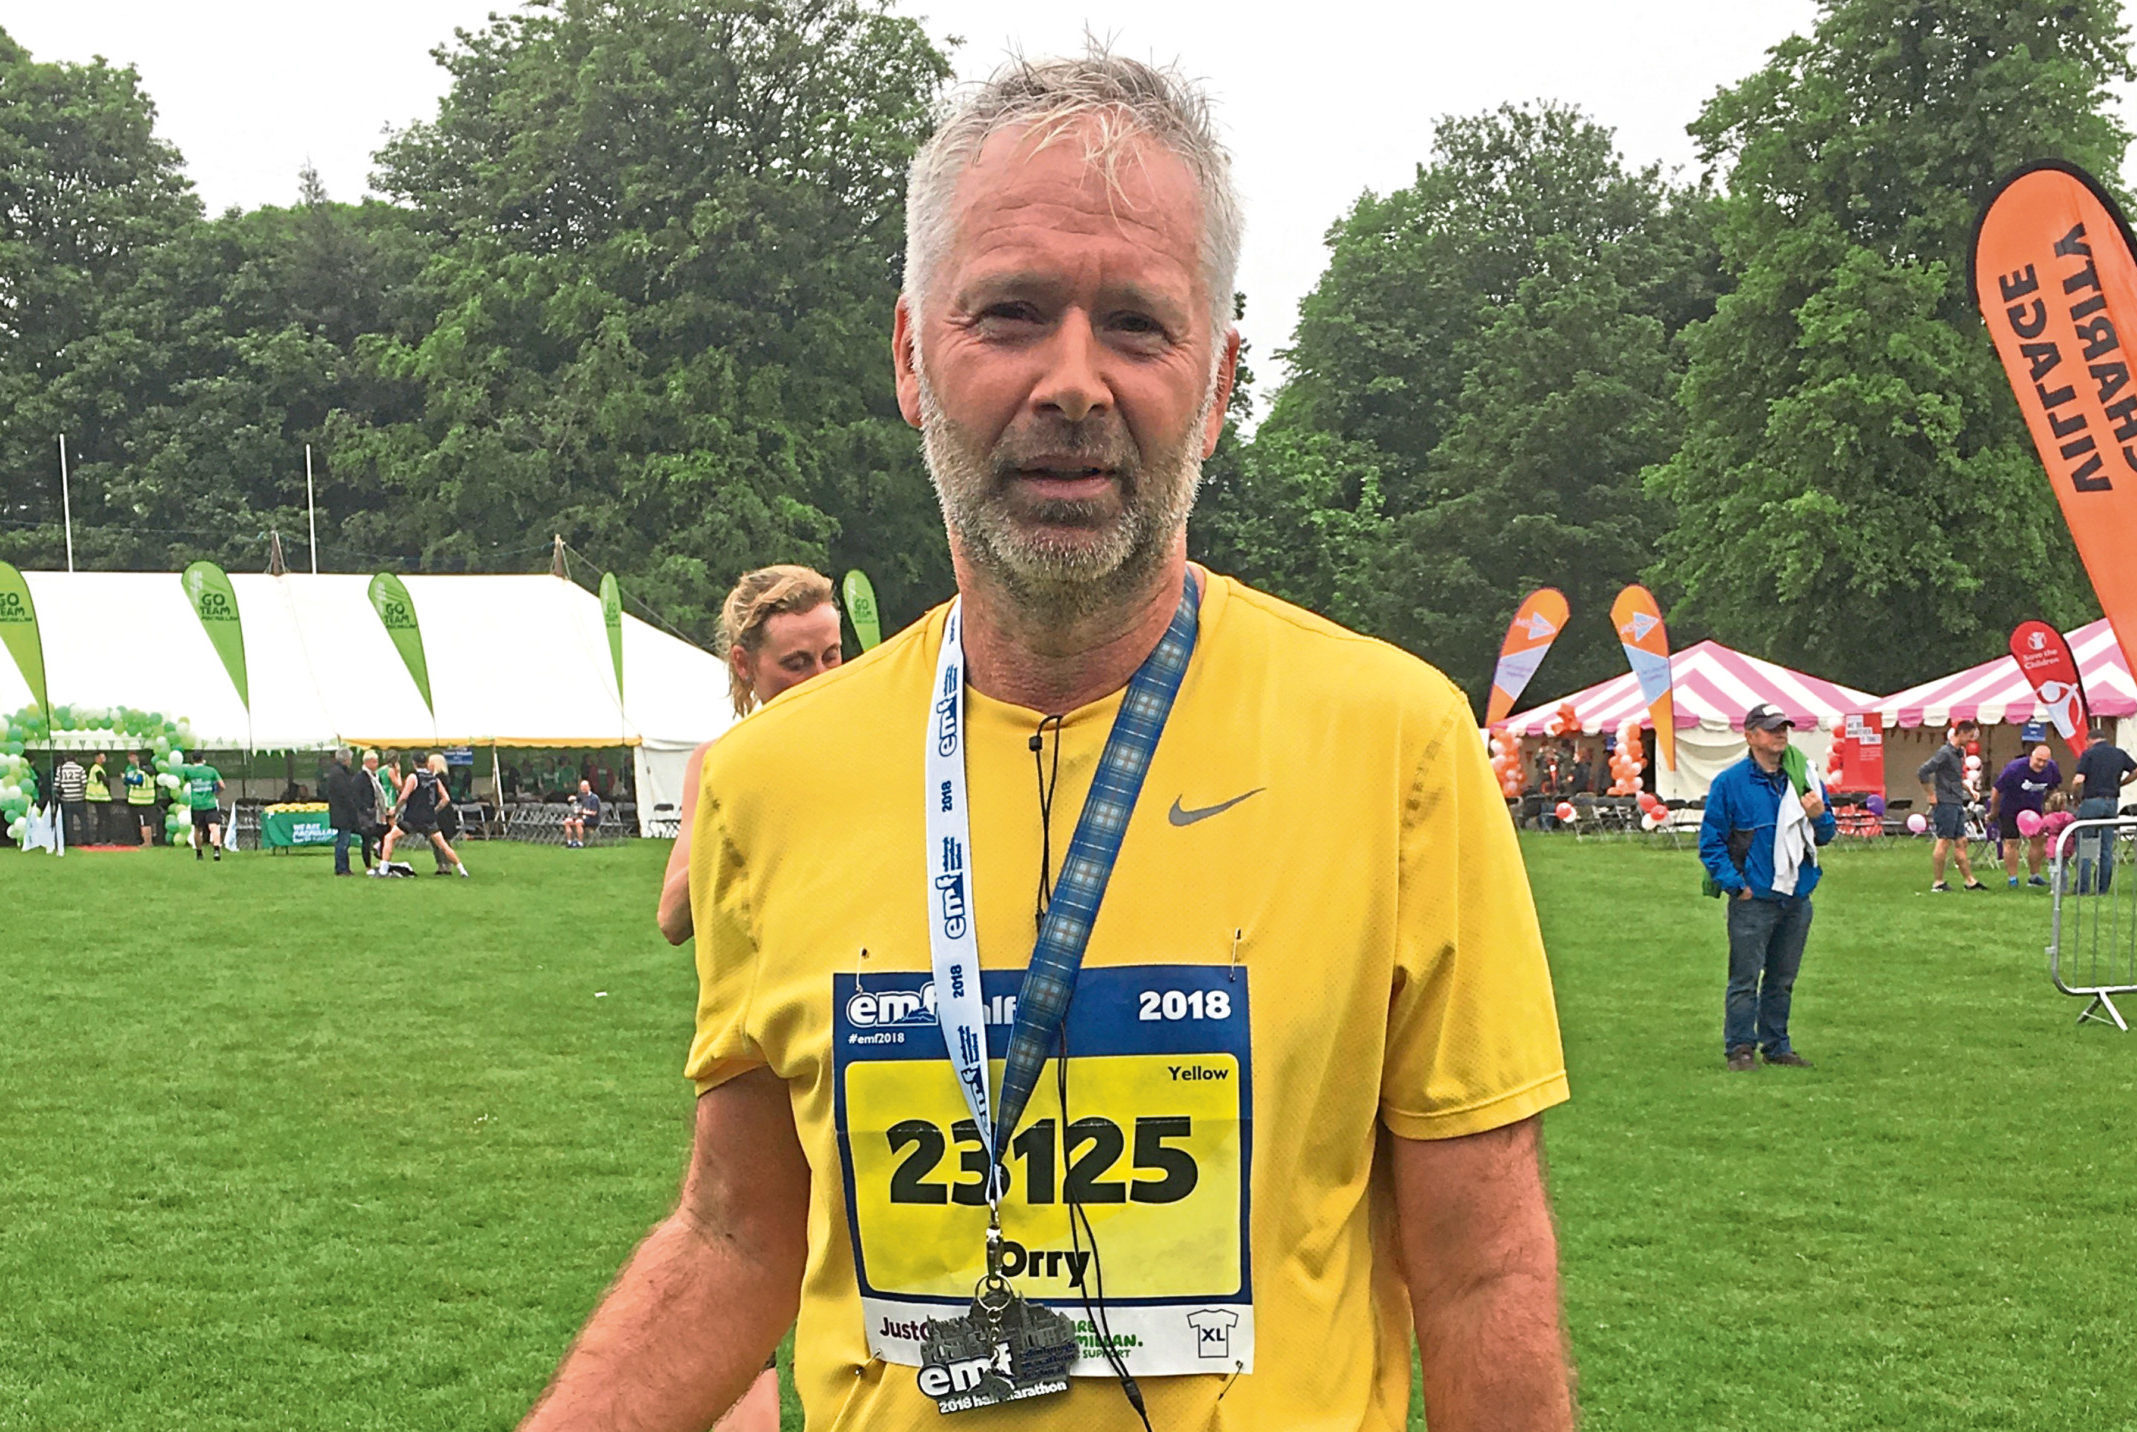 Retired pipe fitter Orry Nowosad after the Edinburgh Half Marathon